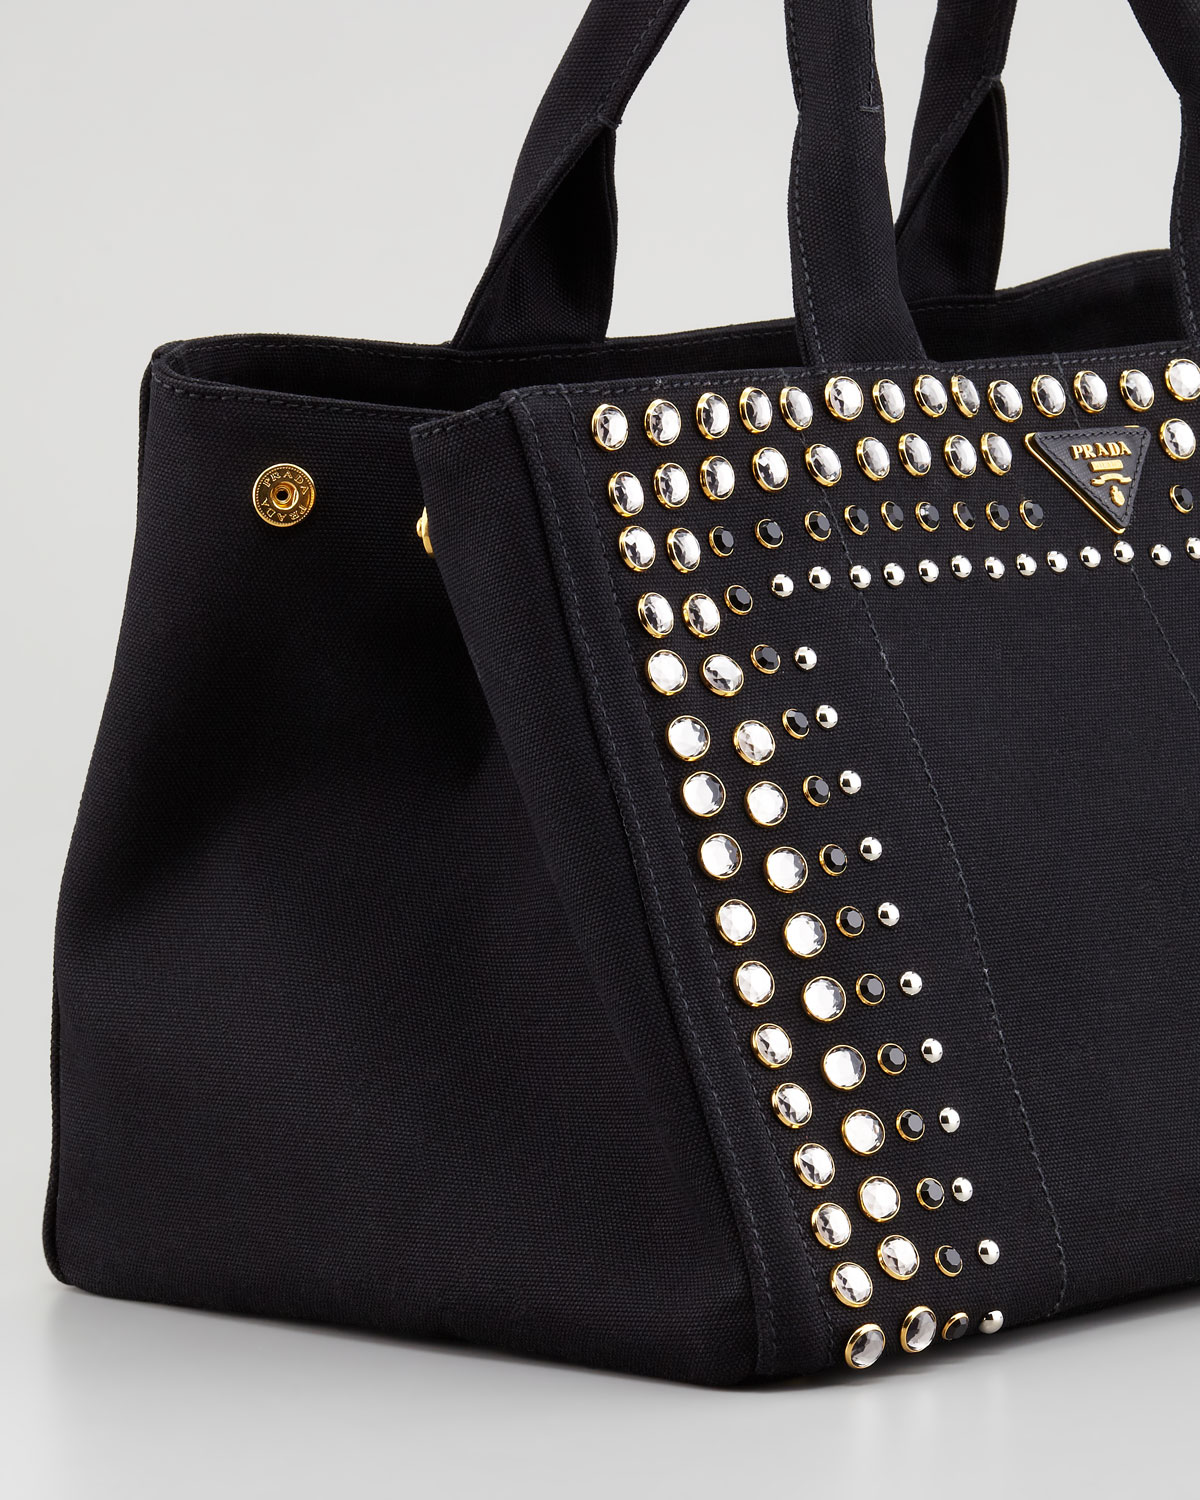 Prada Studded Canvas Gardeners Tote Bag in Black | Lyst